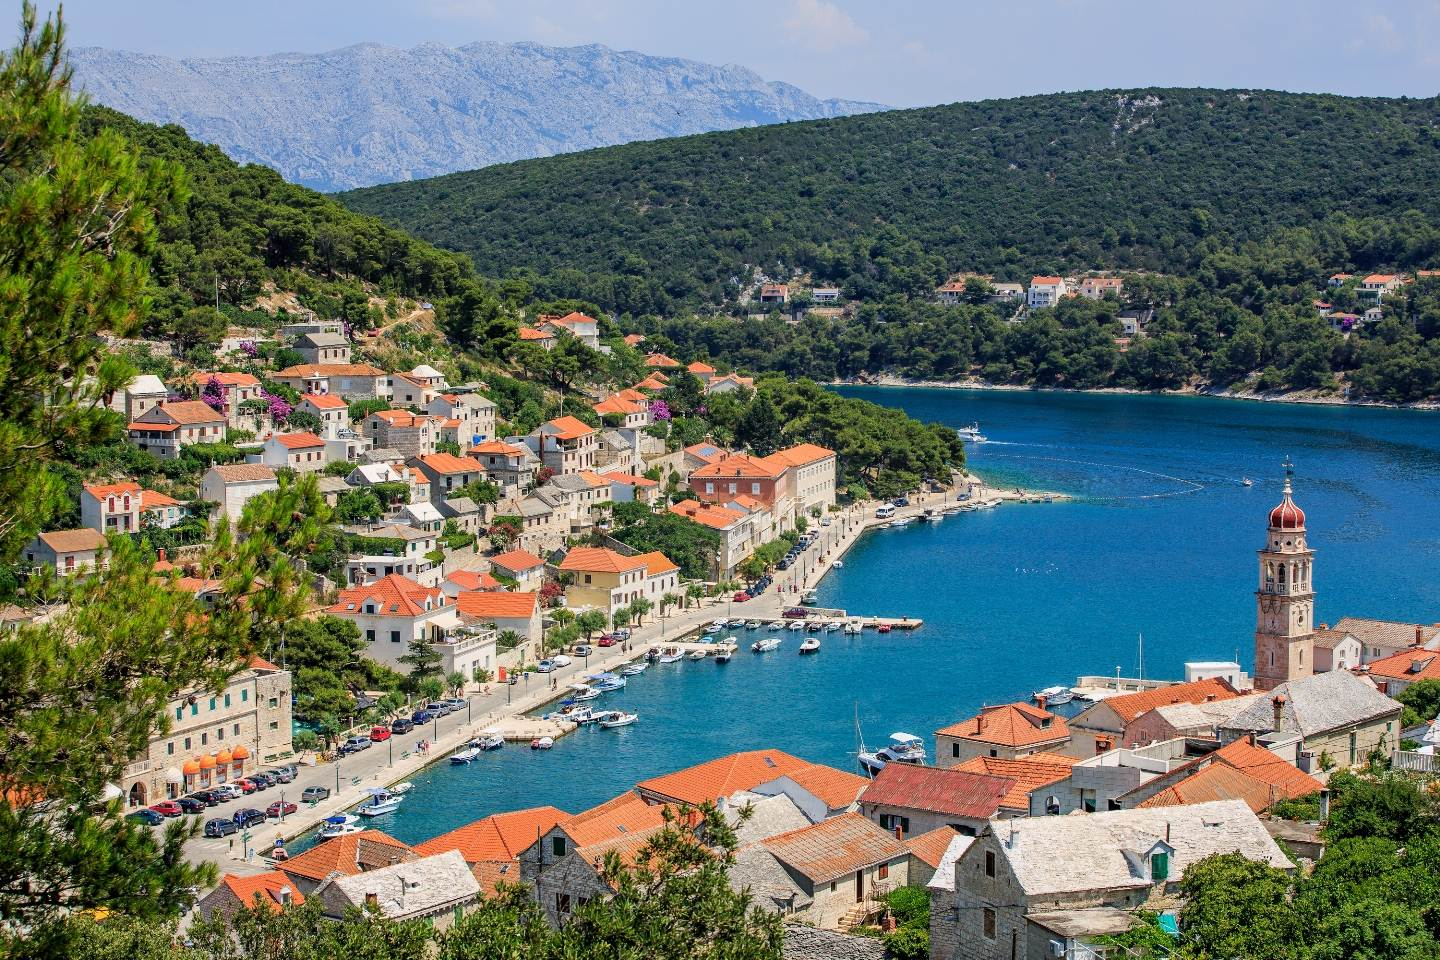 Pucisca Village, Croatia